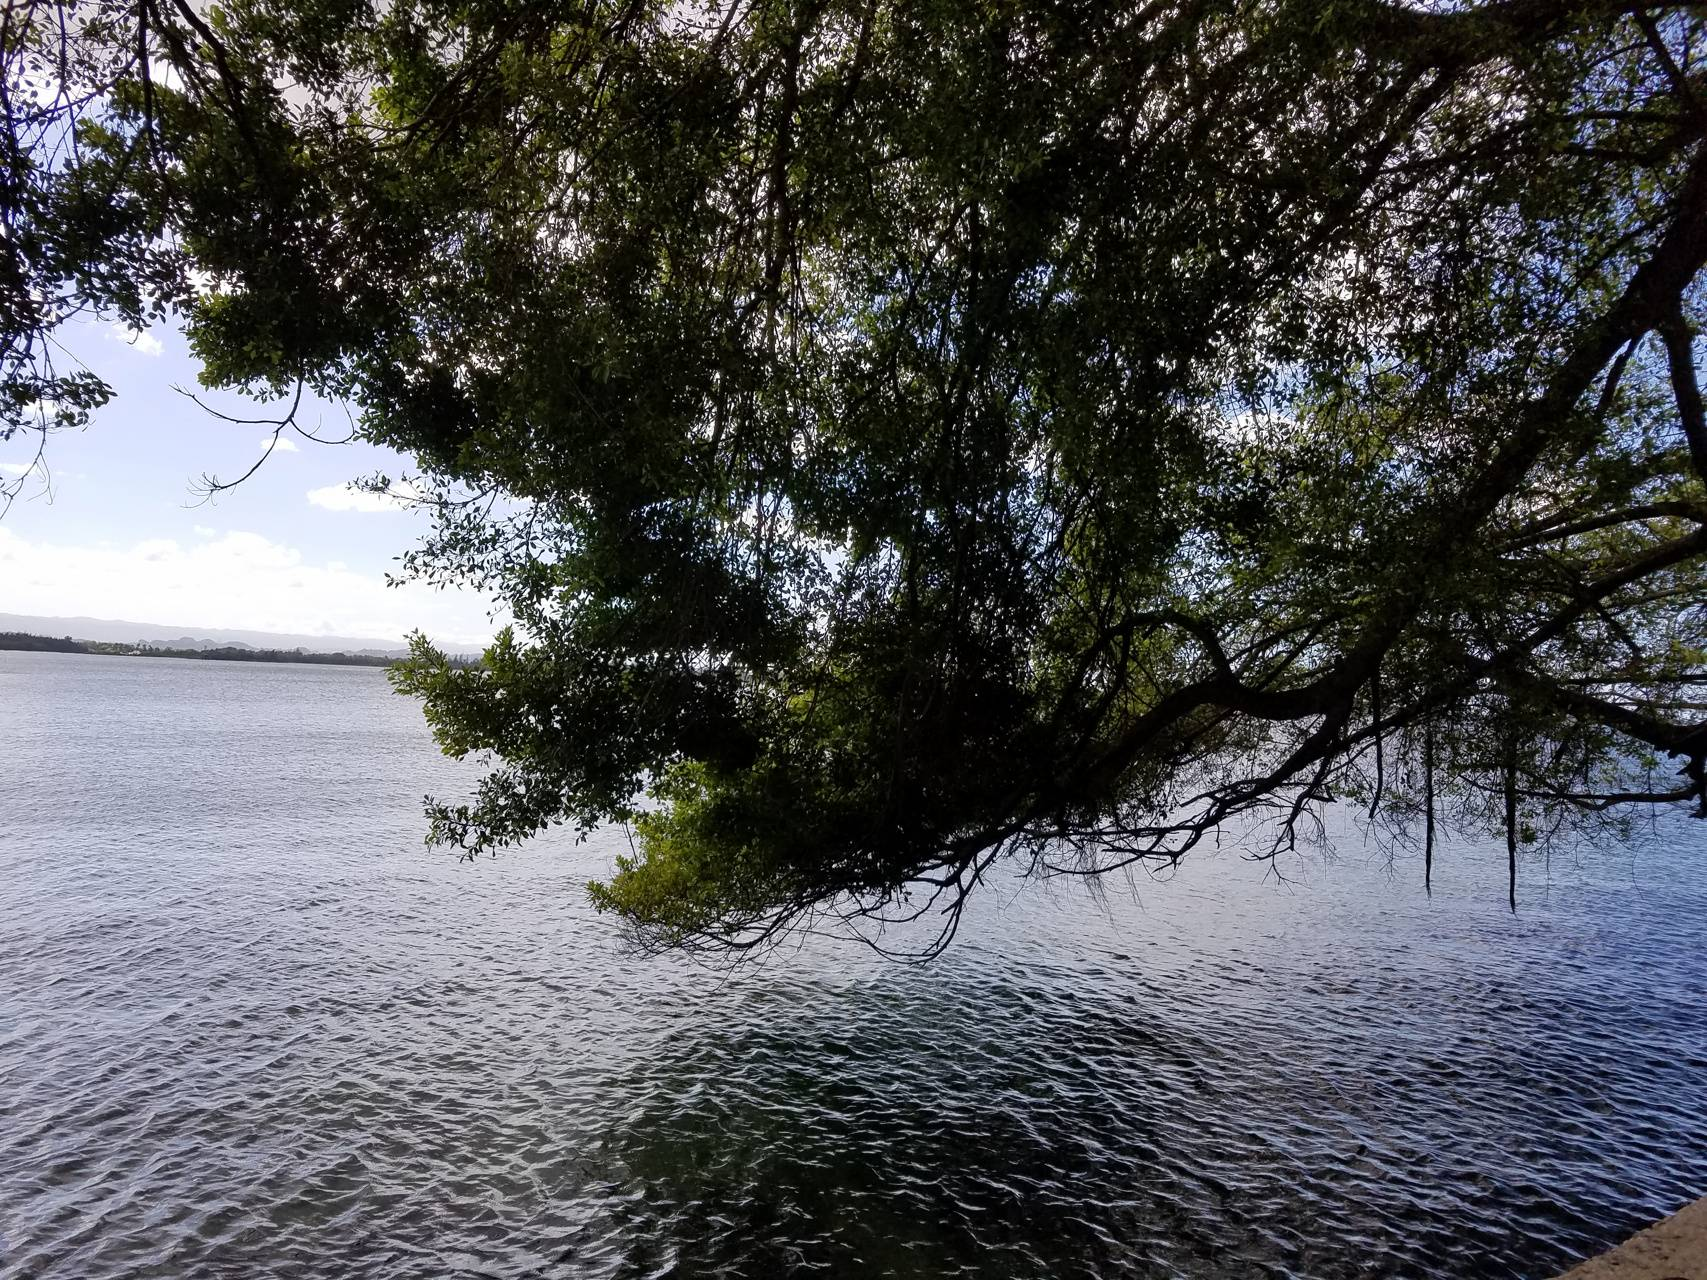 Tree by the water